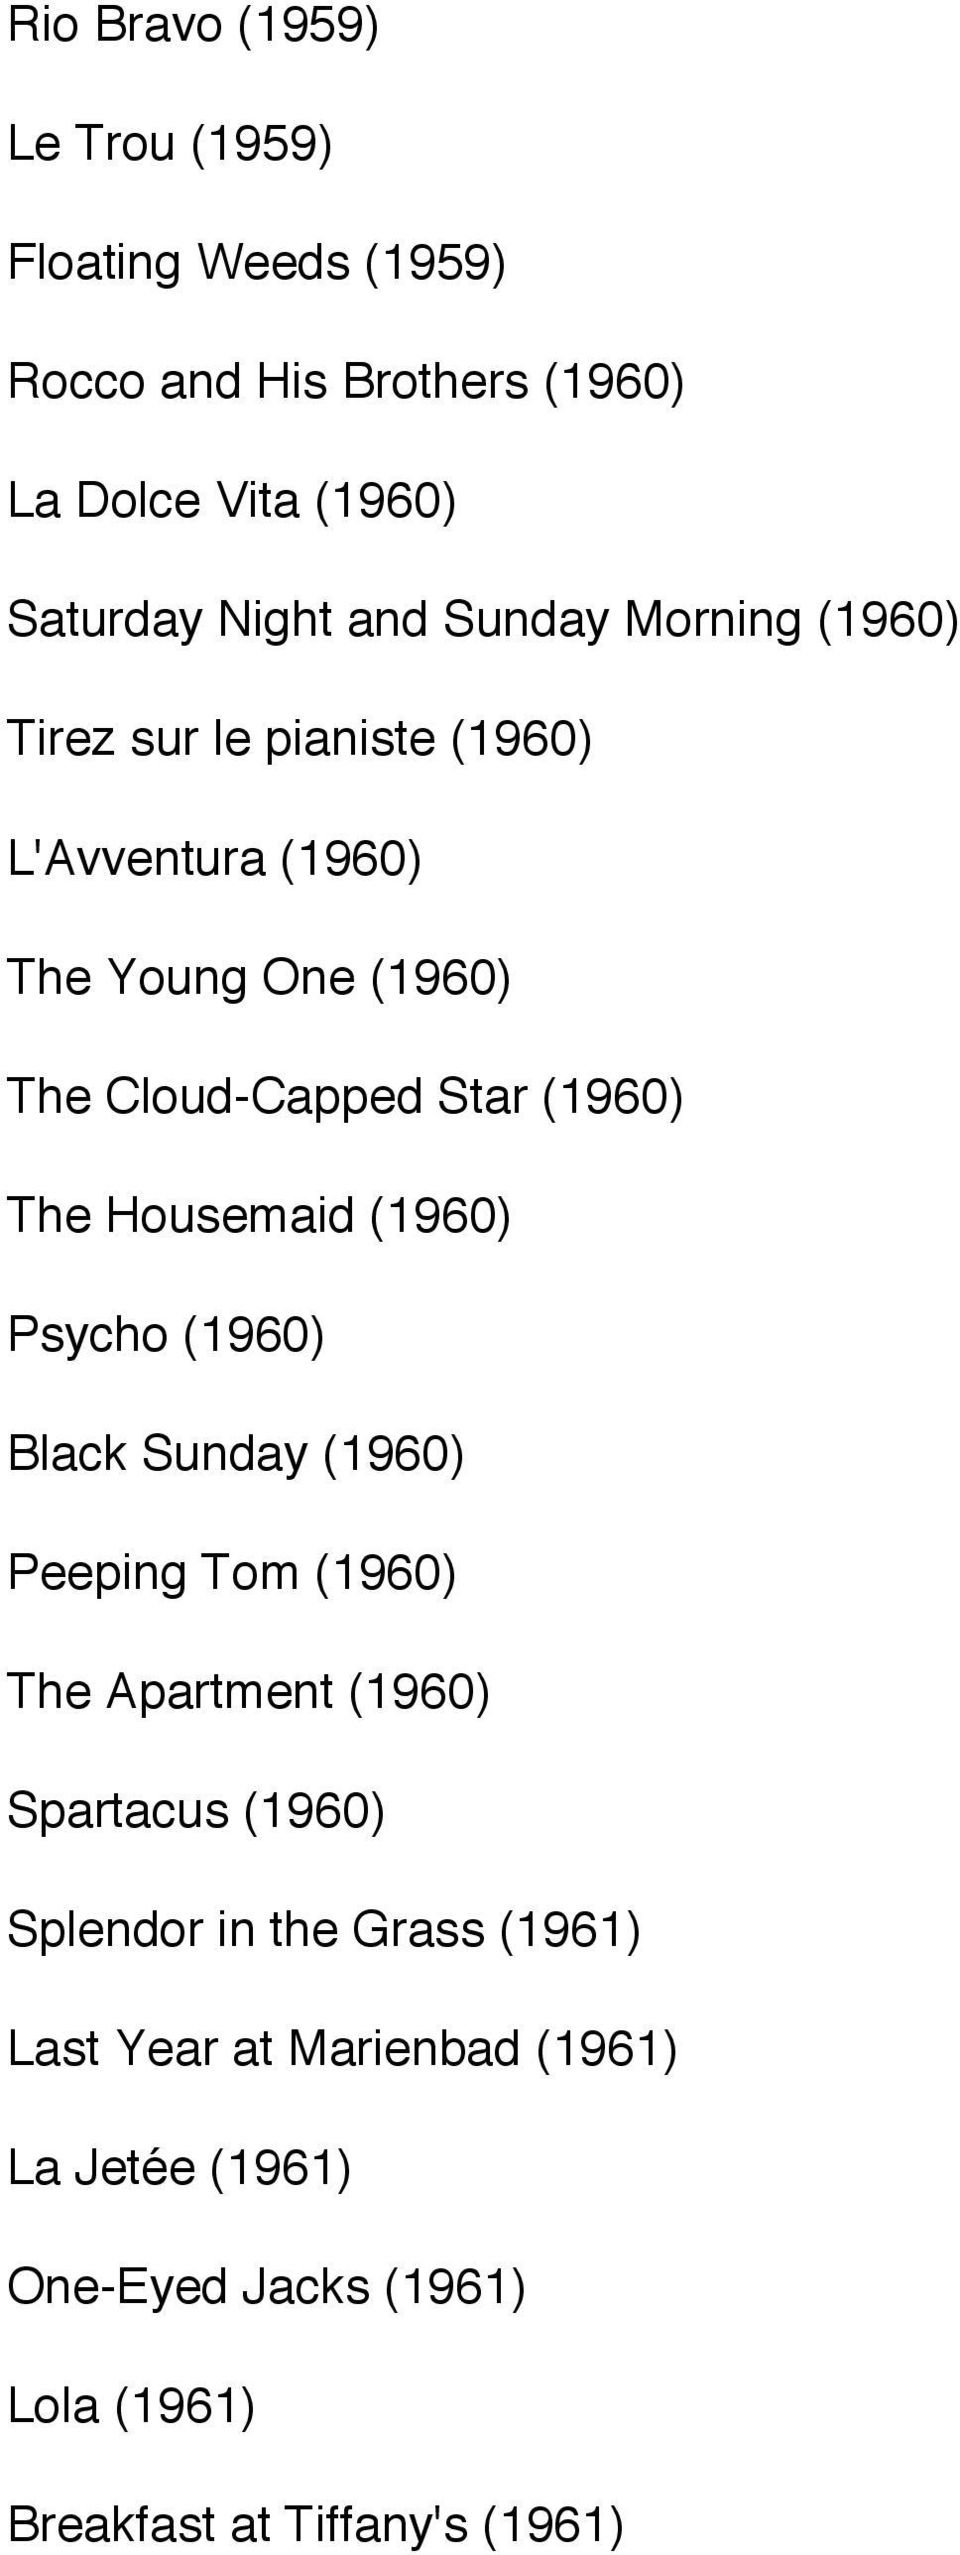 Housemaid (1960) Psycho (1960) Black Sunday (1960) Peeping Tom (1960) The Apartment (1960) Spartacus (1960) Splendor in the